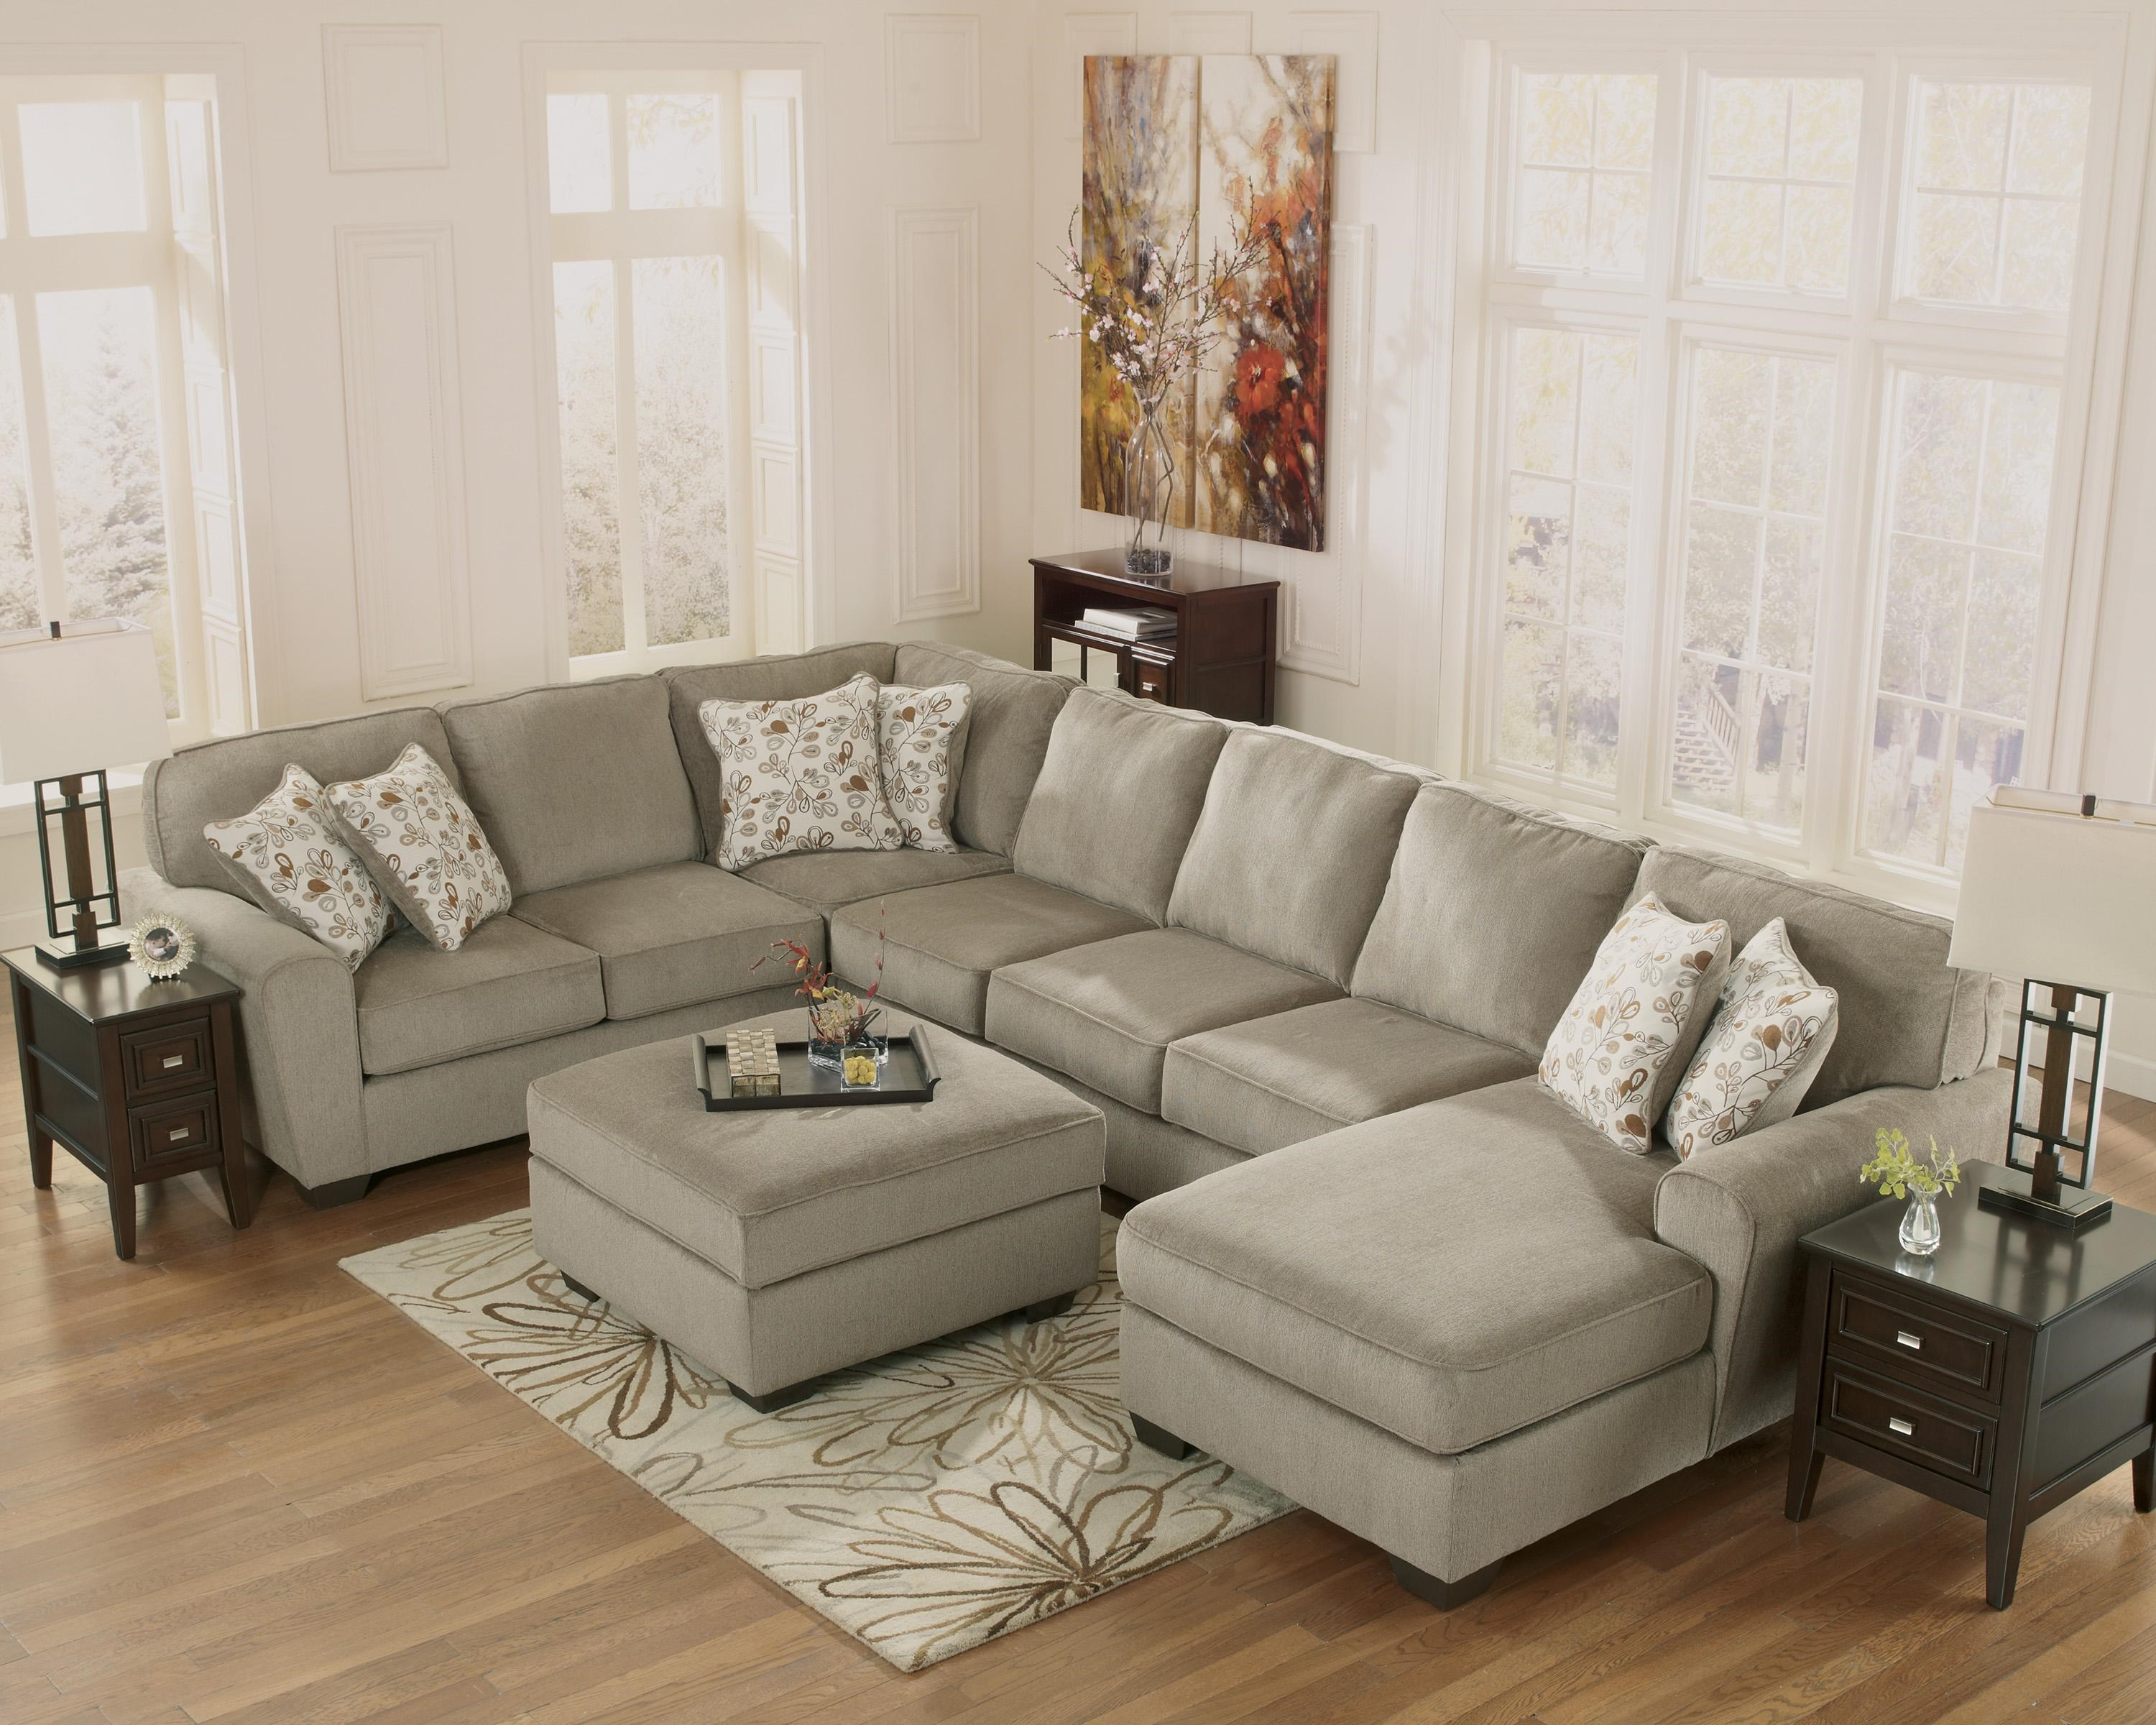 ashley furniture patola park patina 4piece sectional with right chaise